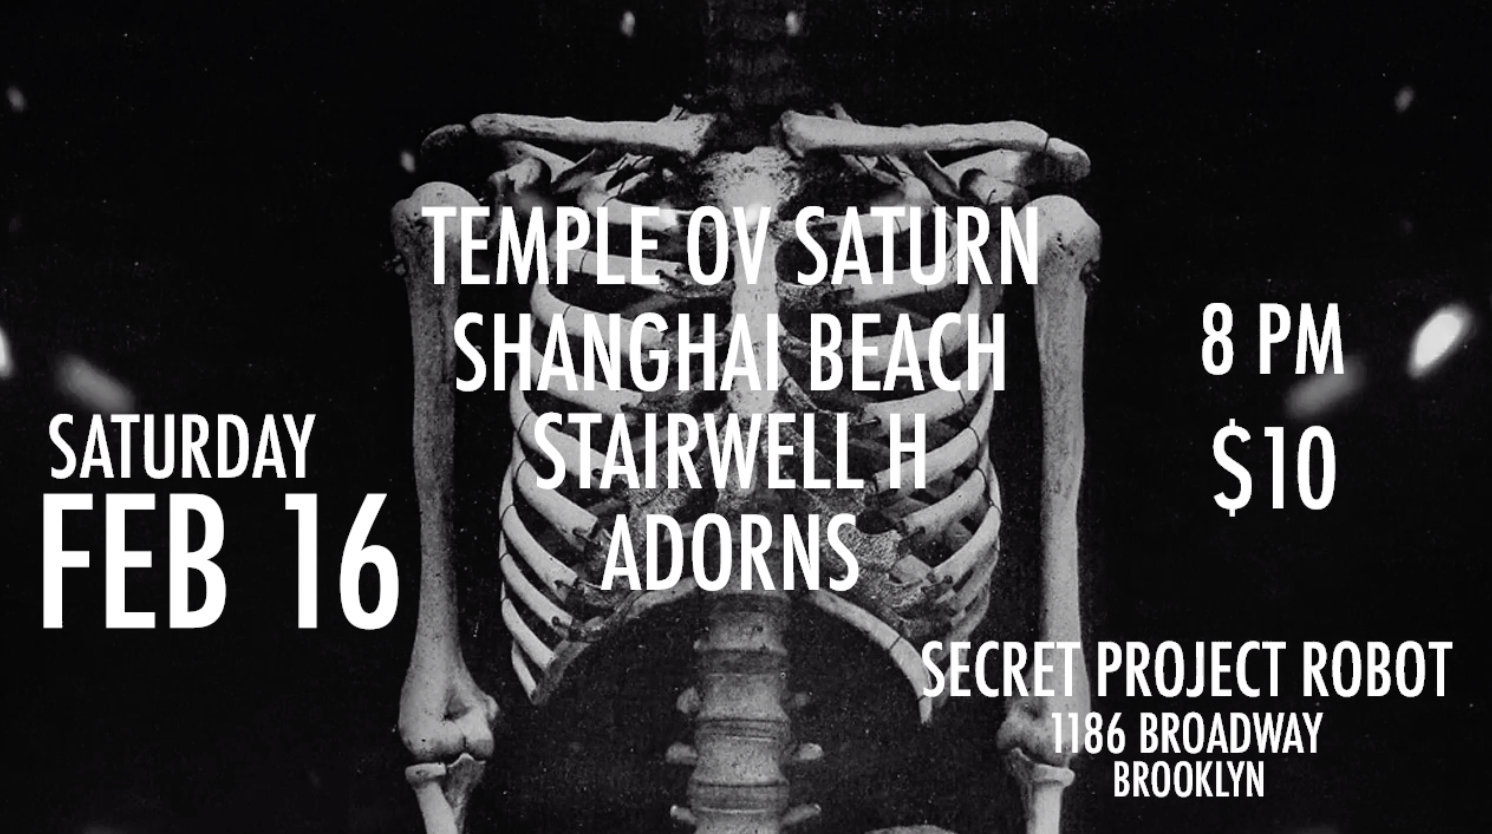 Saturday February 16, 2019: Temple ov Saturn, Shanghai Beach, Stairwell H, Adorns  Secret Project Robot 1186 Broadway Brooklyn